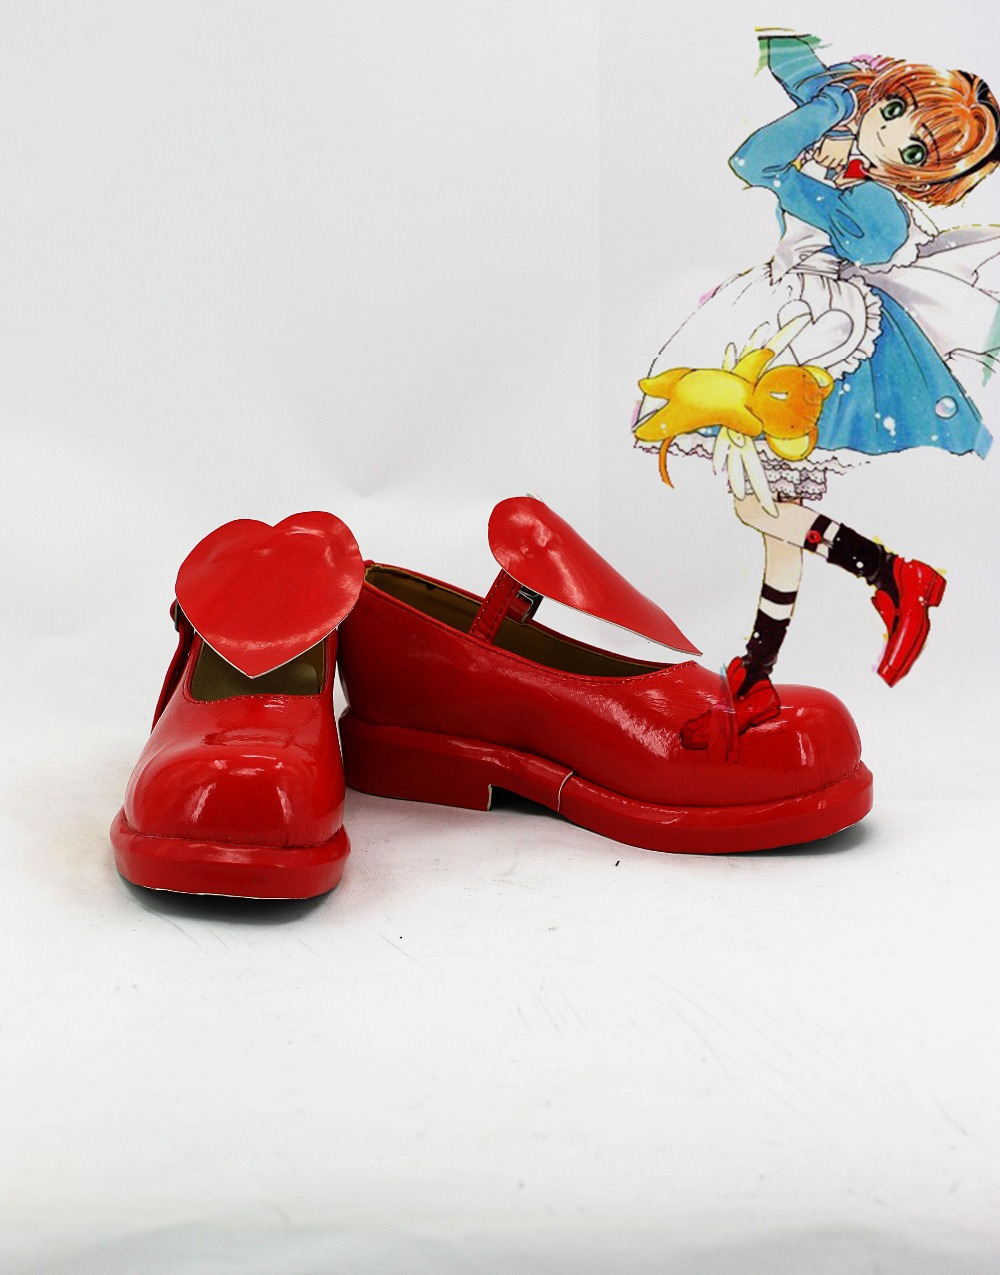 Cosplay Boots Japanese Anime Cardcaptor Sakura Cosplay Sakura Shoes Red Color For Adult